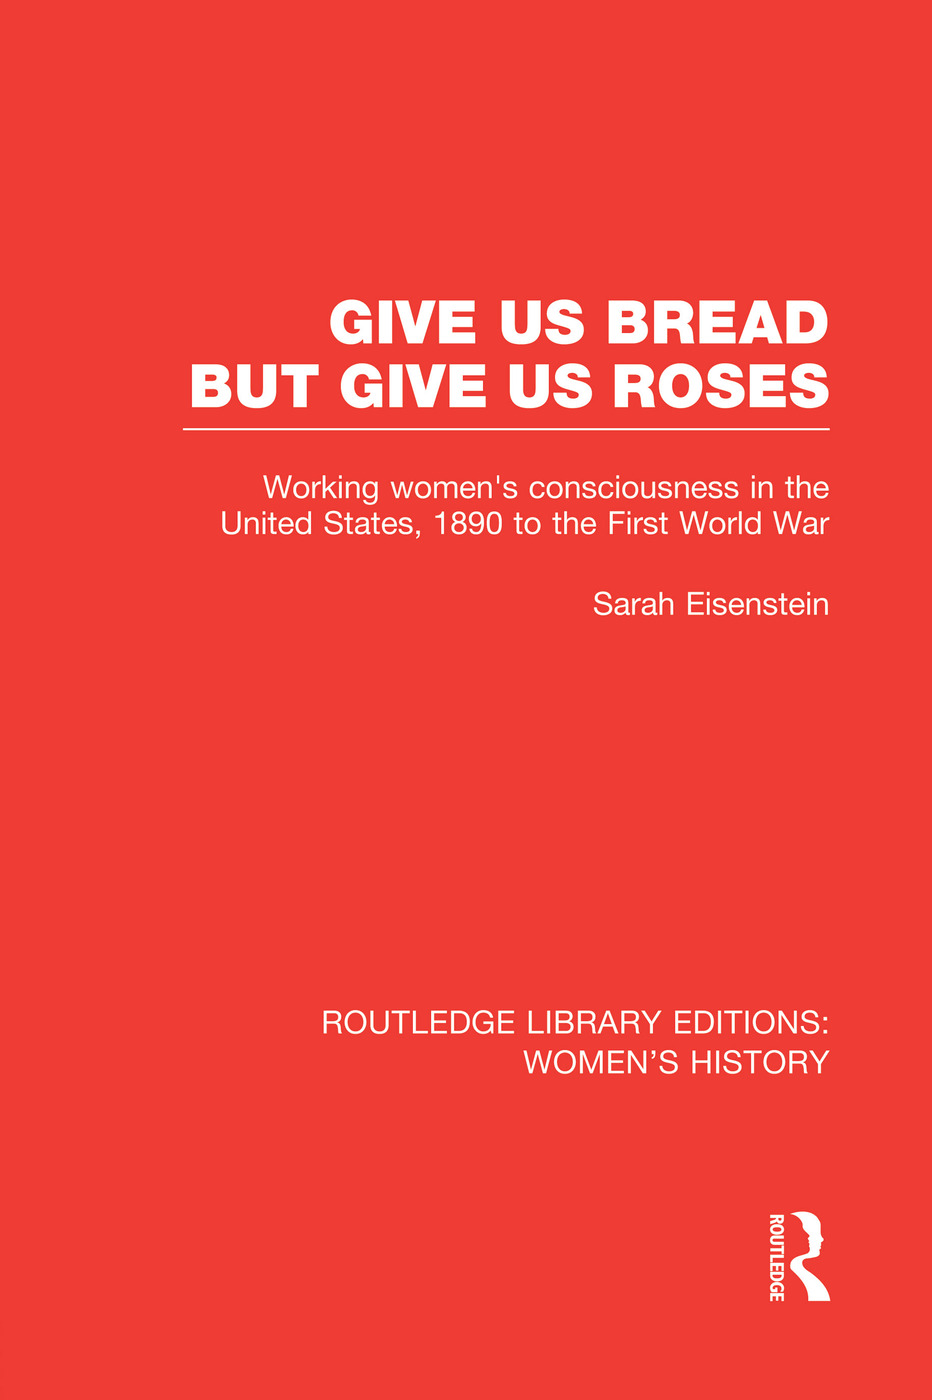 Give Us Bread but Give Us Roses: Working Women's Consciousness in the United States, 1890 to the First World War book cover